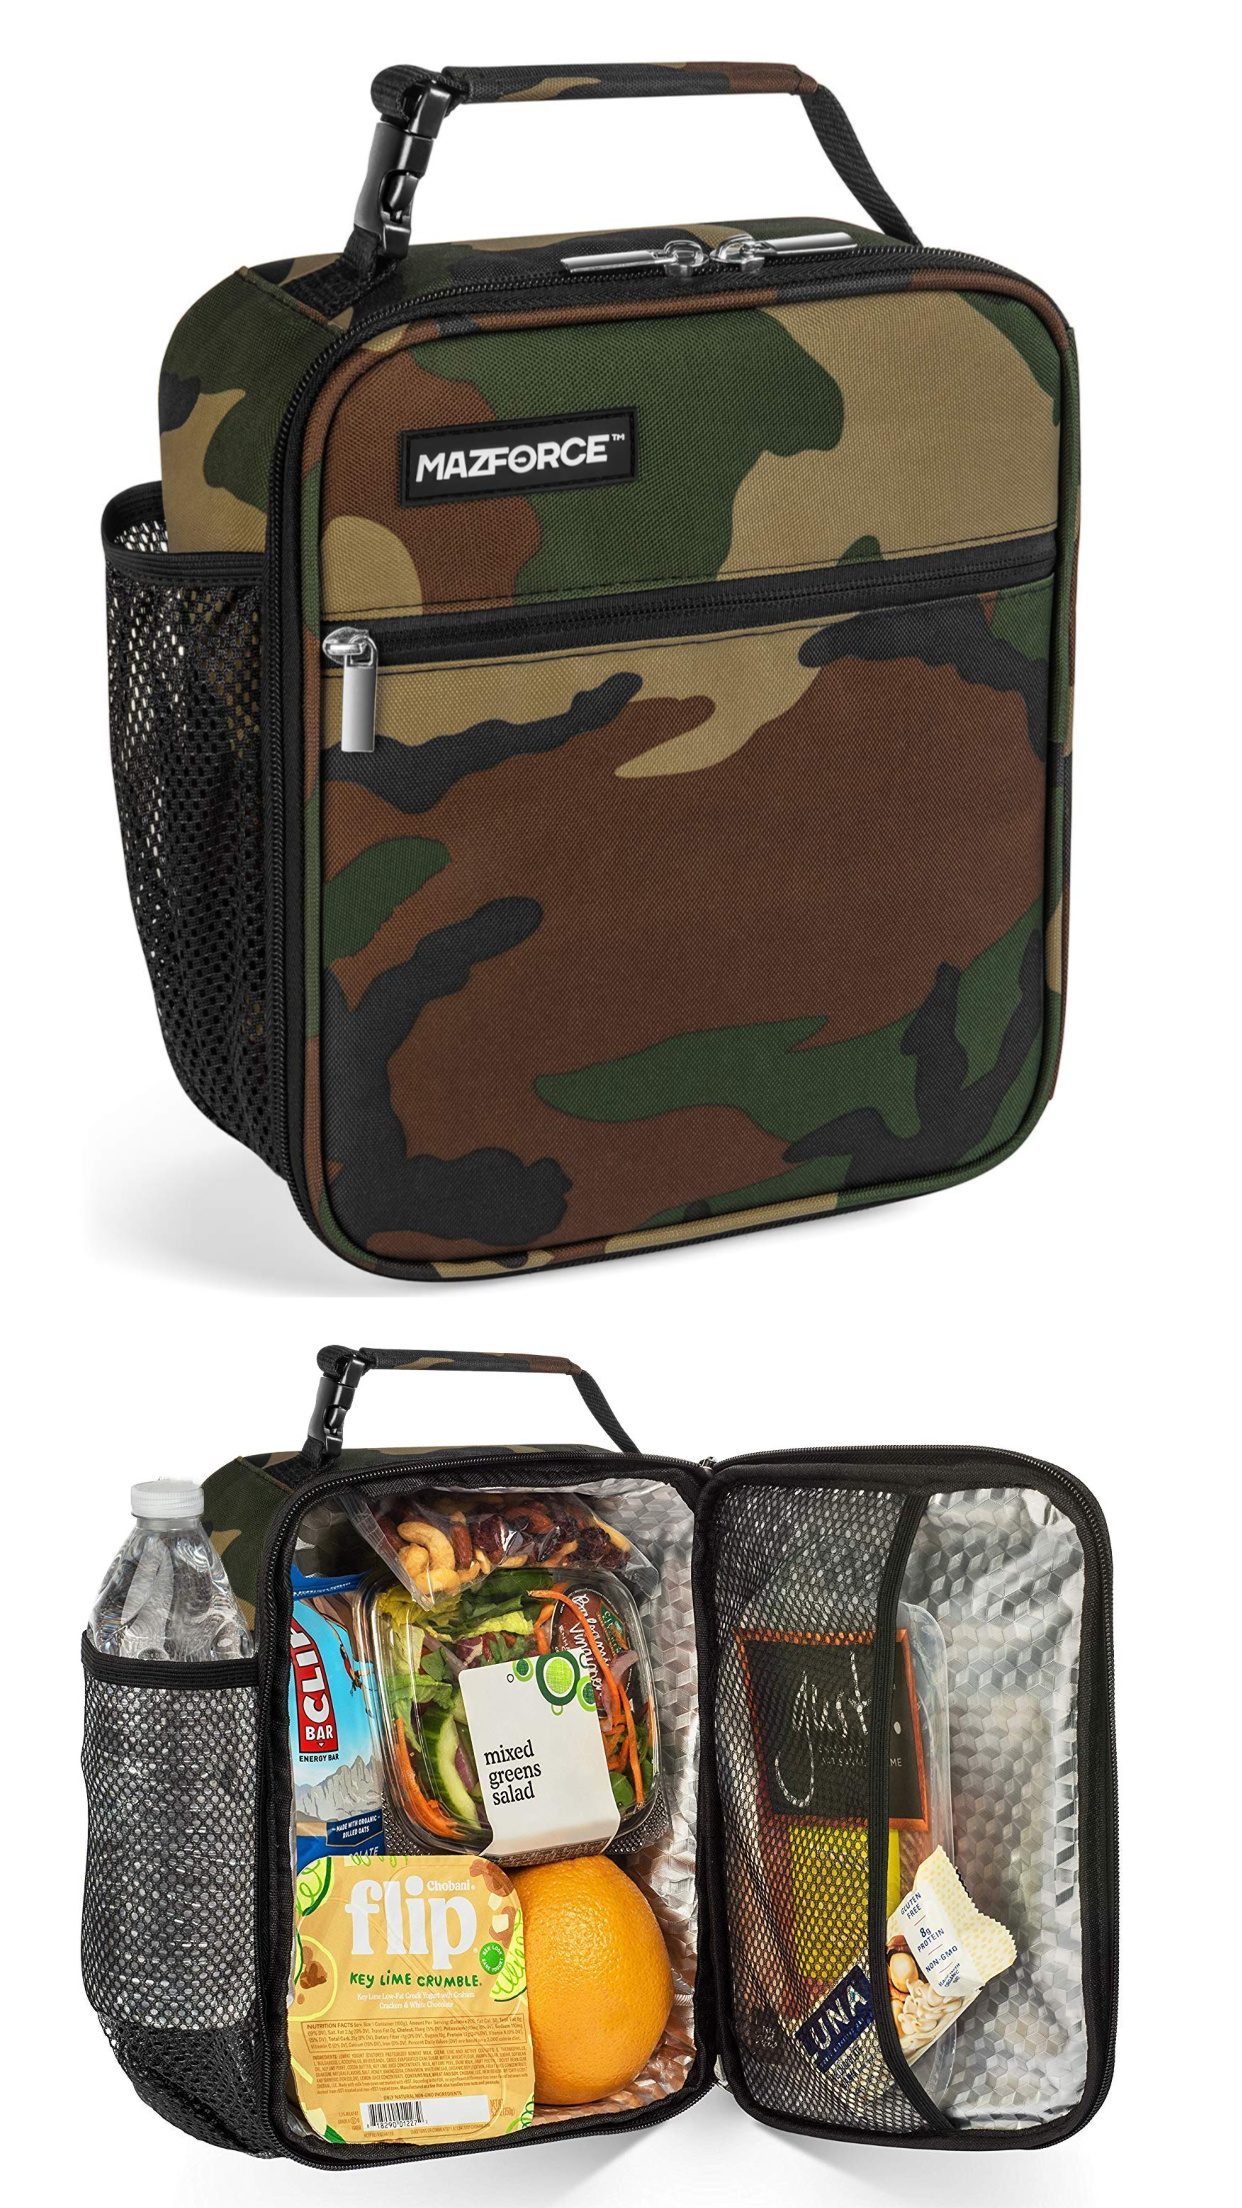 The best insulated lunch bags for school: Mazforce is highly rated at a great price